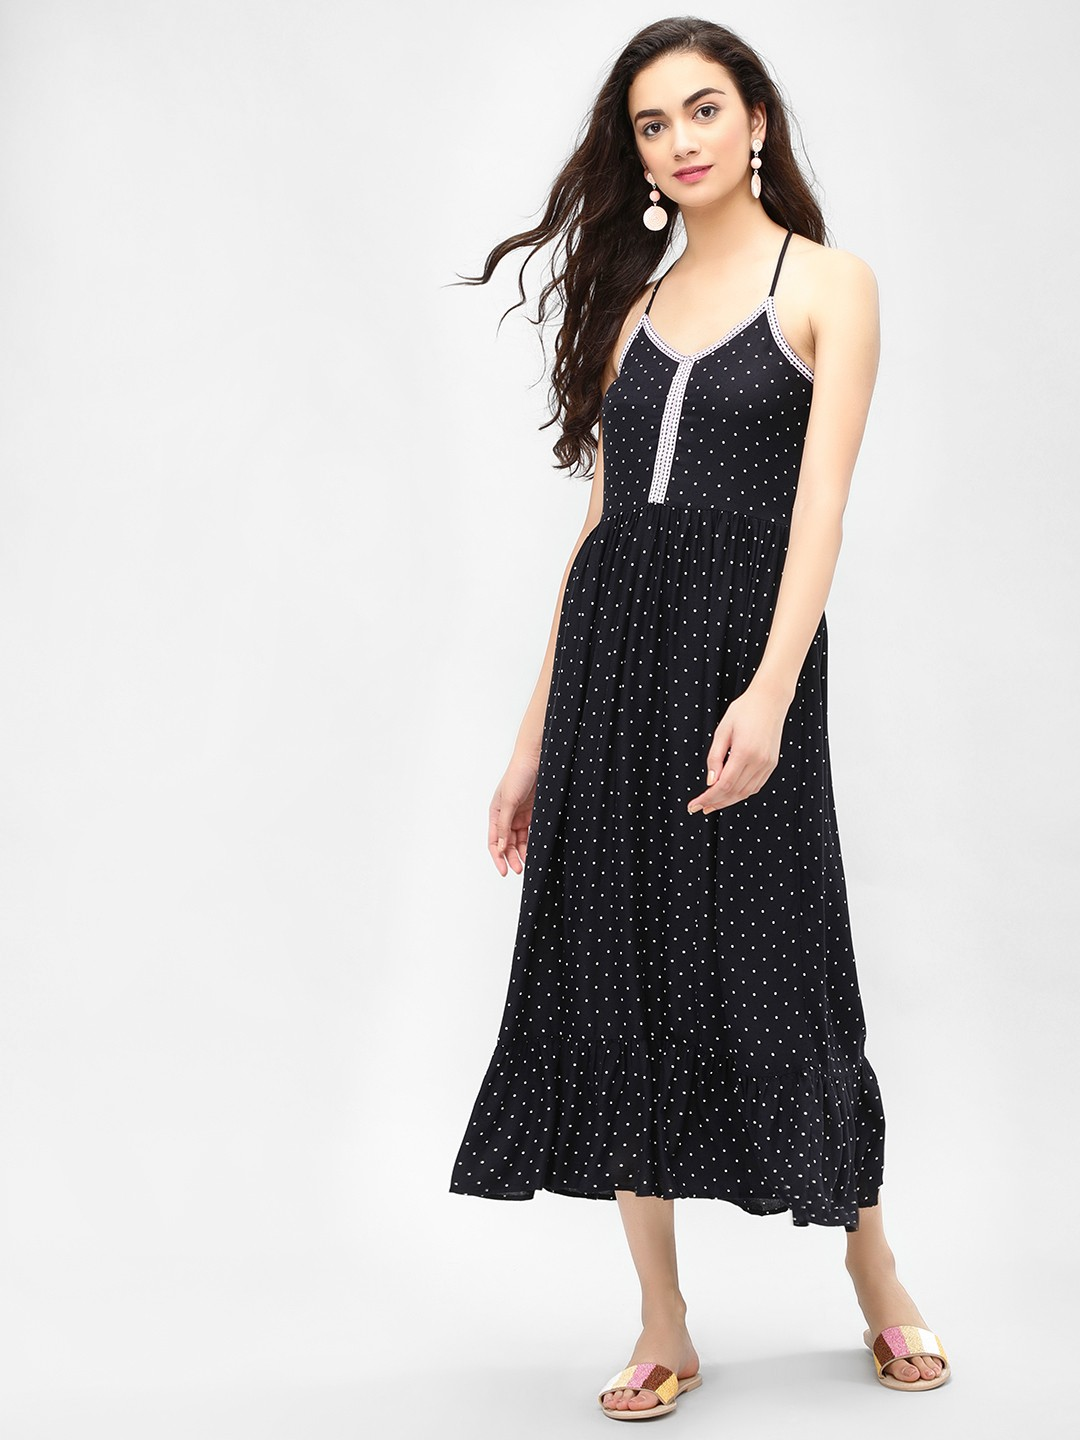 Sbuys Black Polka Dot Strappy Maxi Dress 1